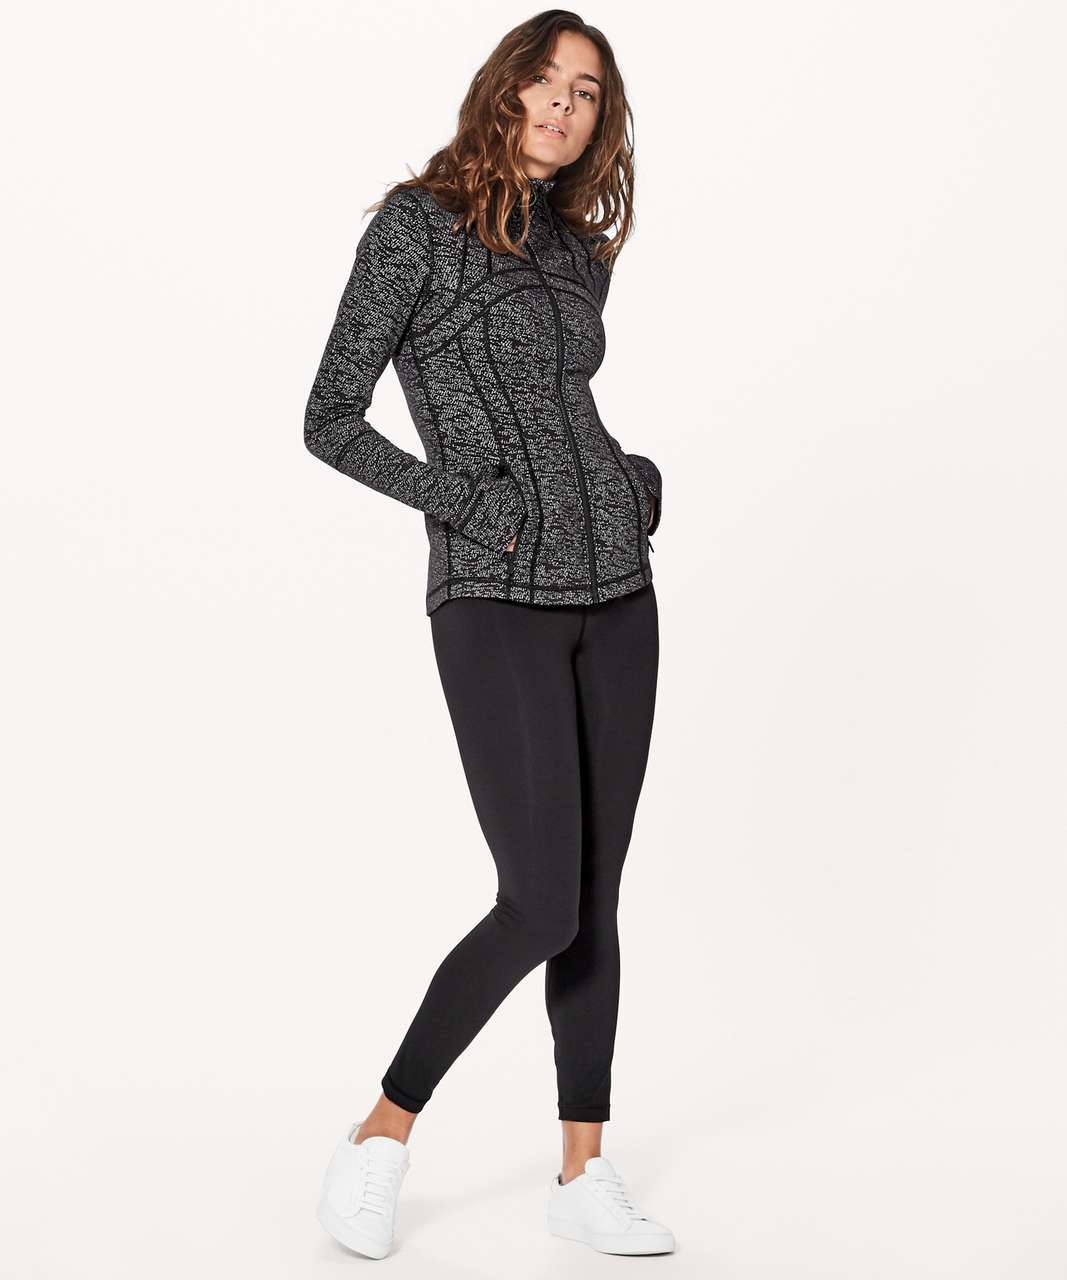 Lululemon Define Jacket - Luon Frayed Camo Black White